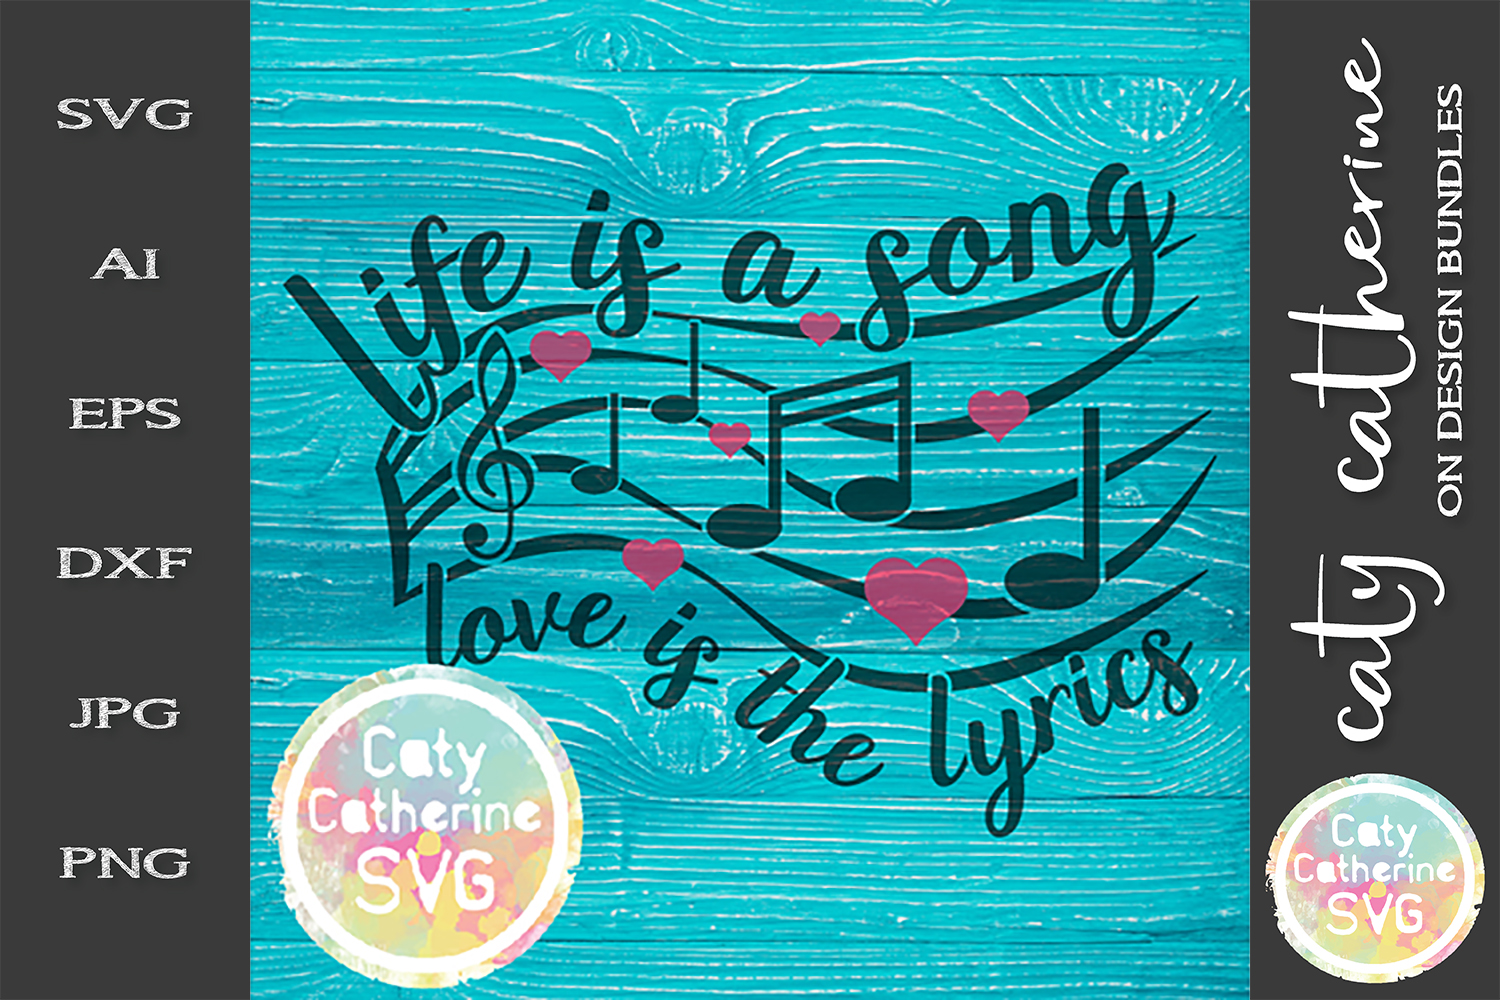 Life Is A Song Love Is The Lyrics SVG Cut File example image 1